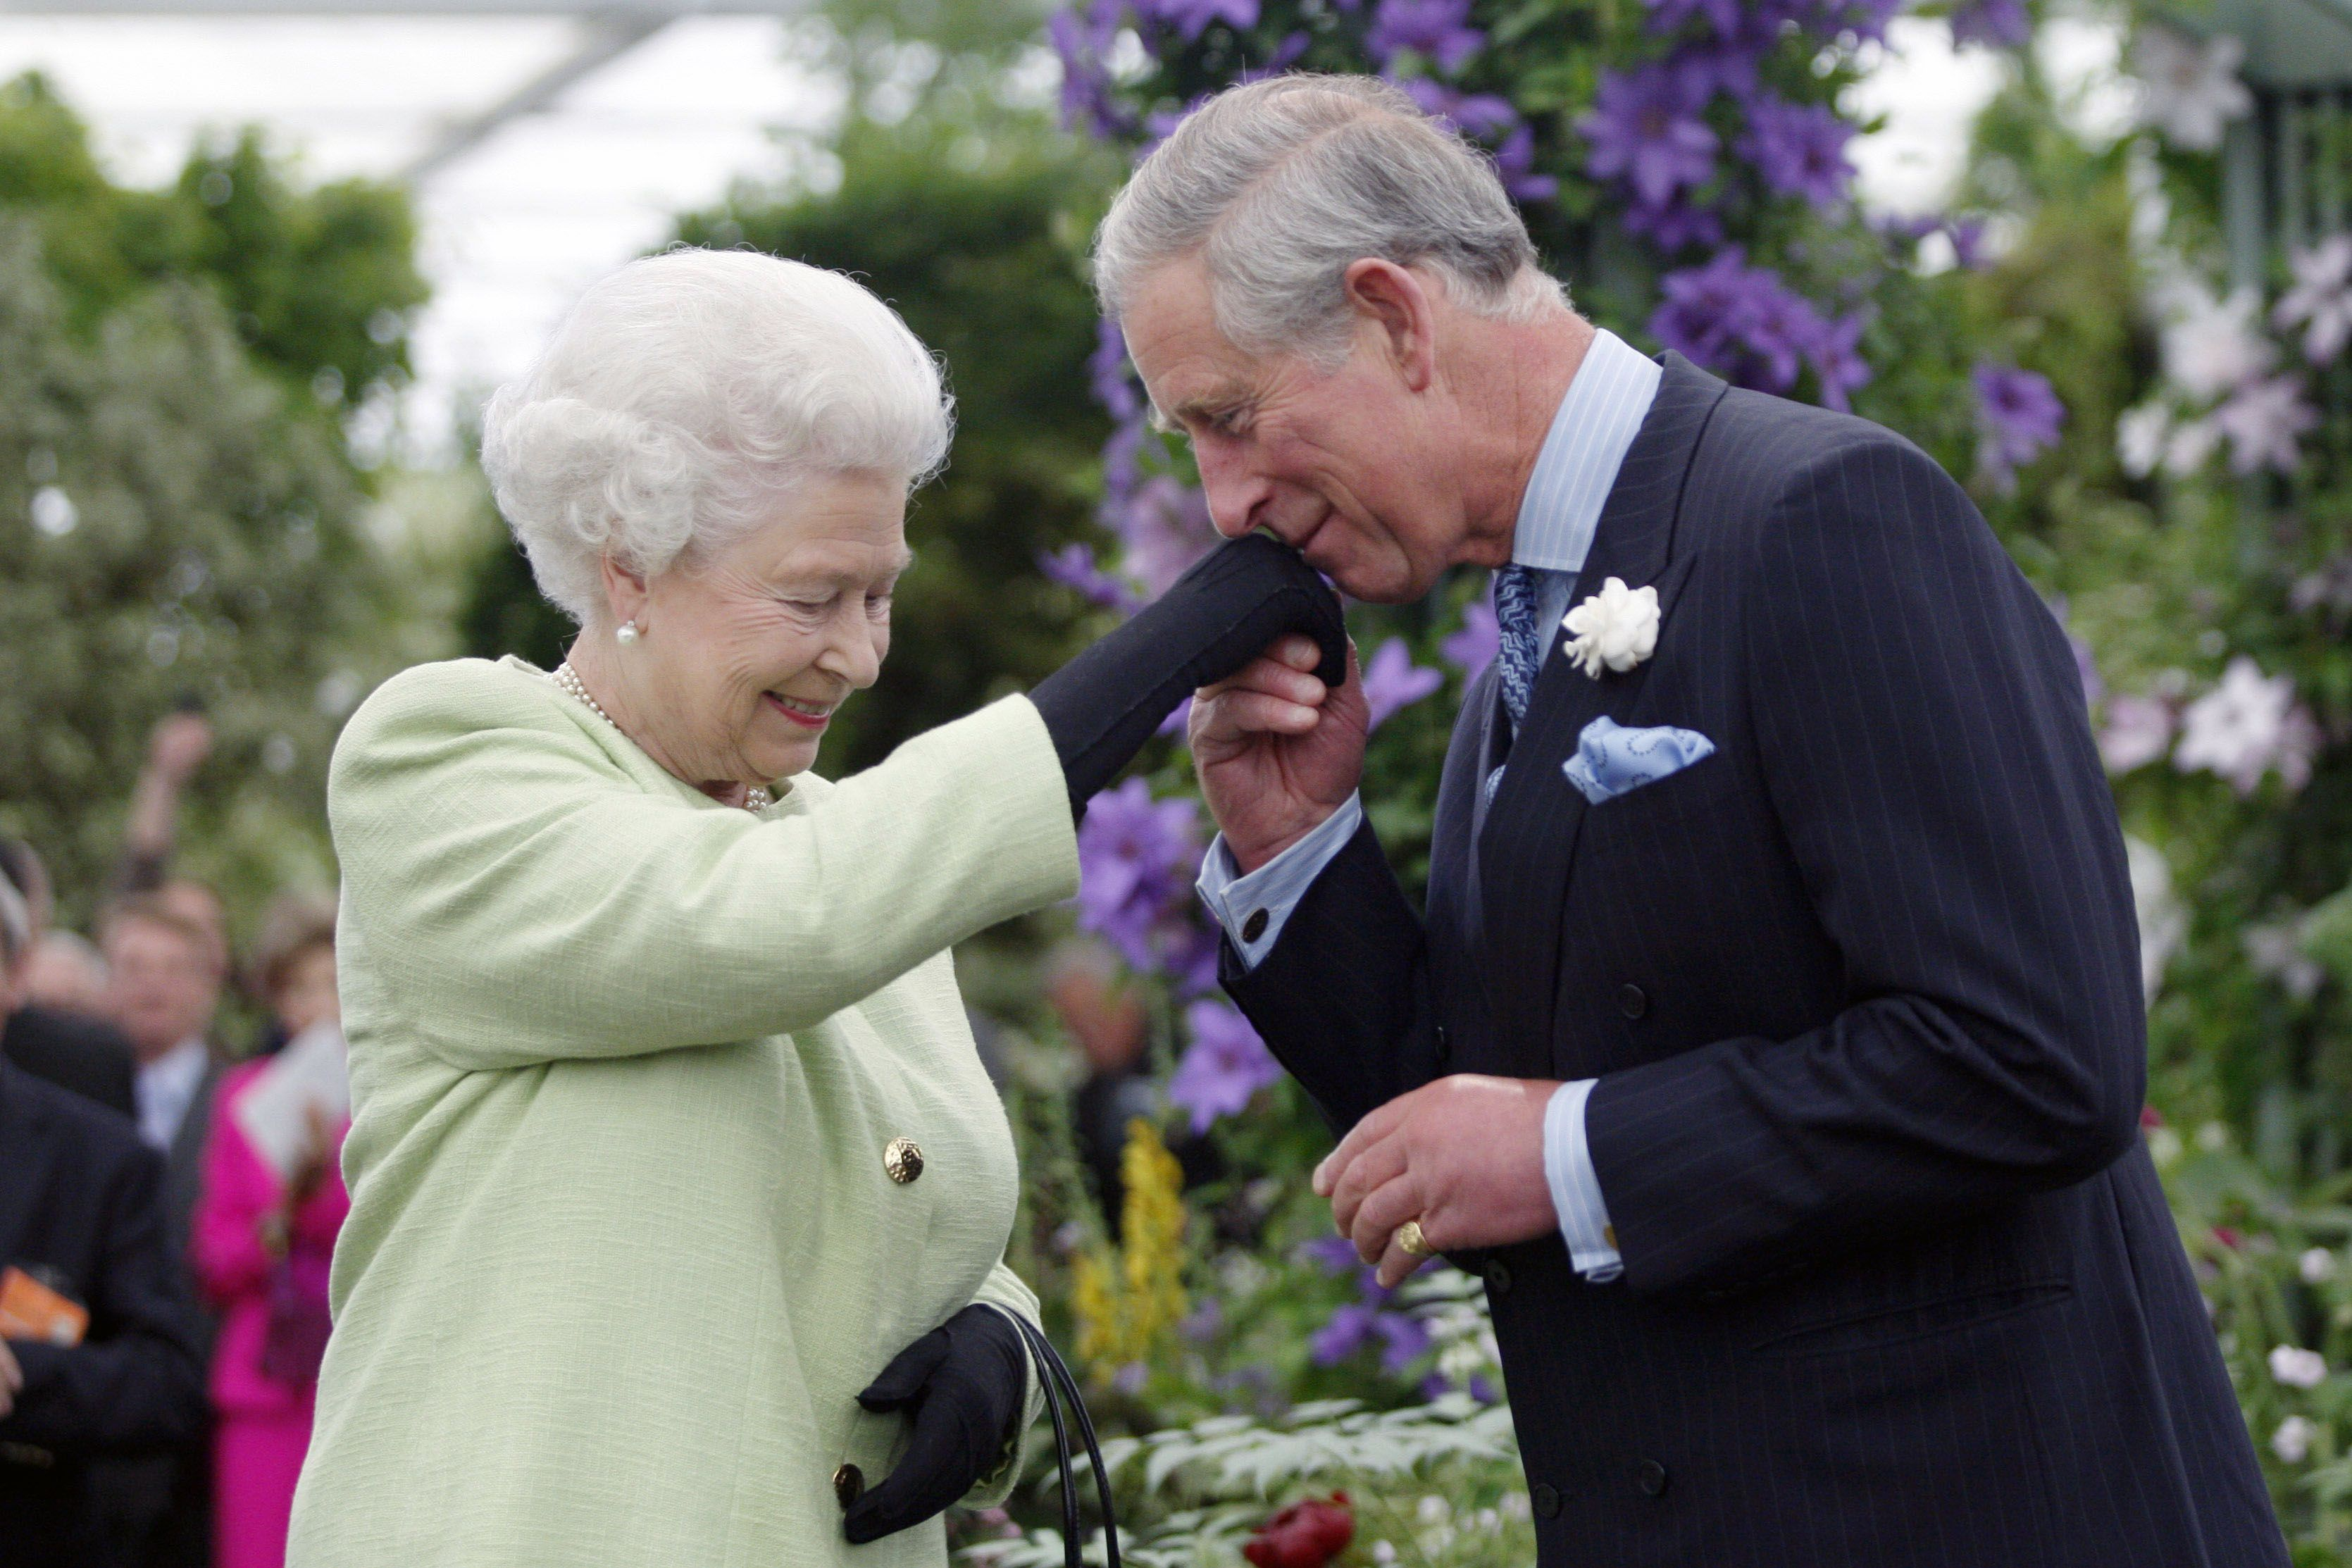 The Queen Plans to Retire within 18 Months and Hand Things Off to Prince Charles, According to a New Report